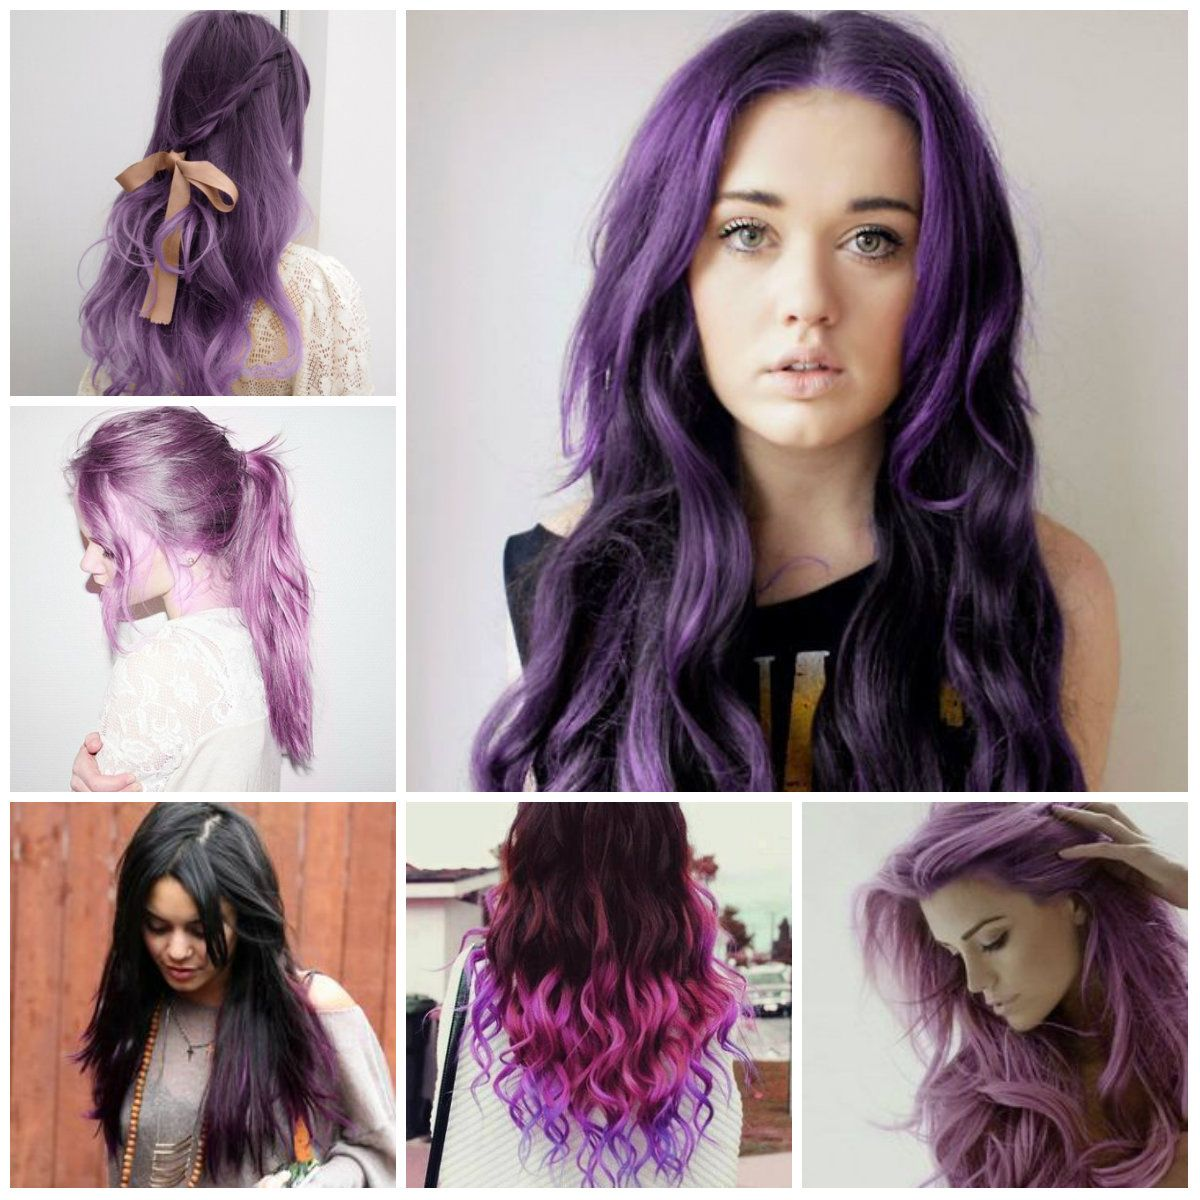 latest hair colour styles hair color ideas 2016 trendy hairstyles 2015 4960 | 1c03032cd2528bb98e491d853002acc7